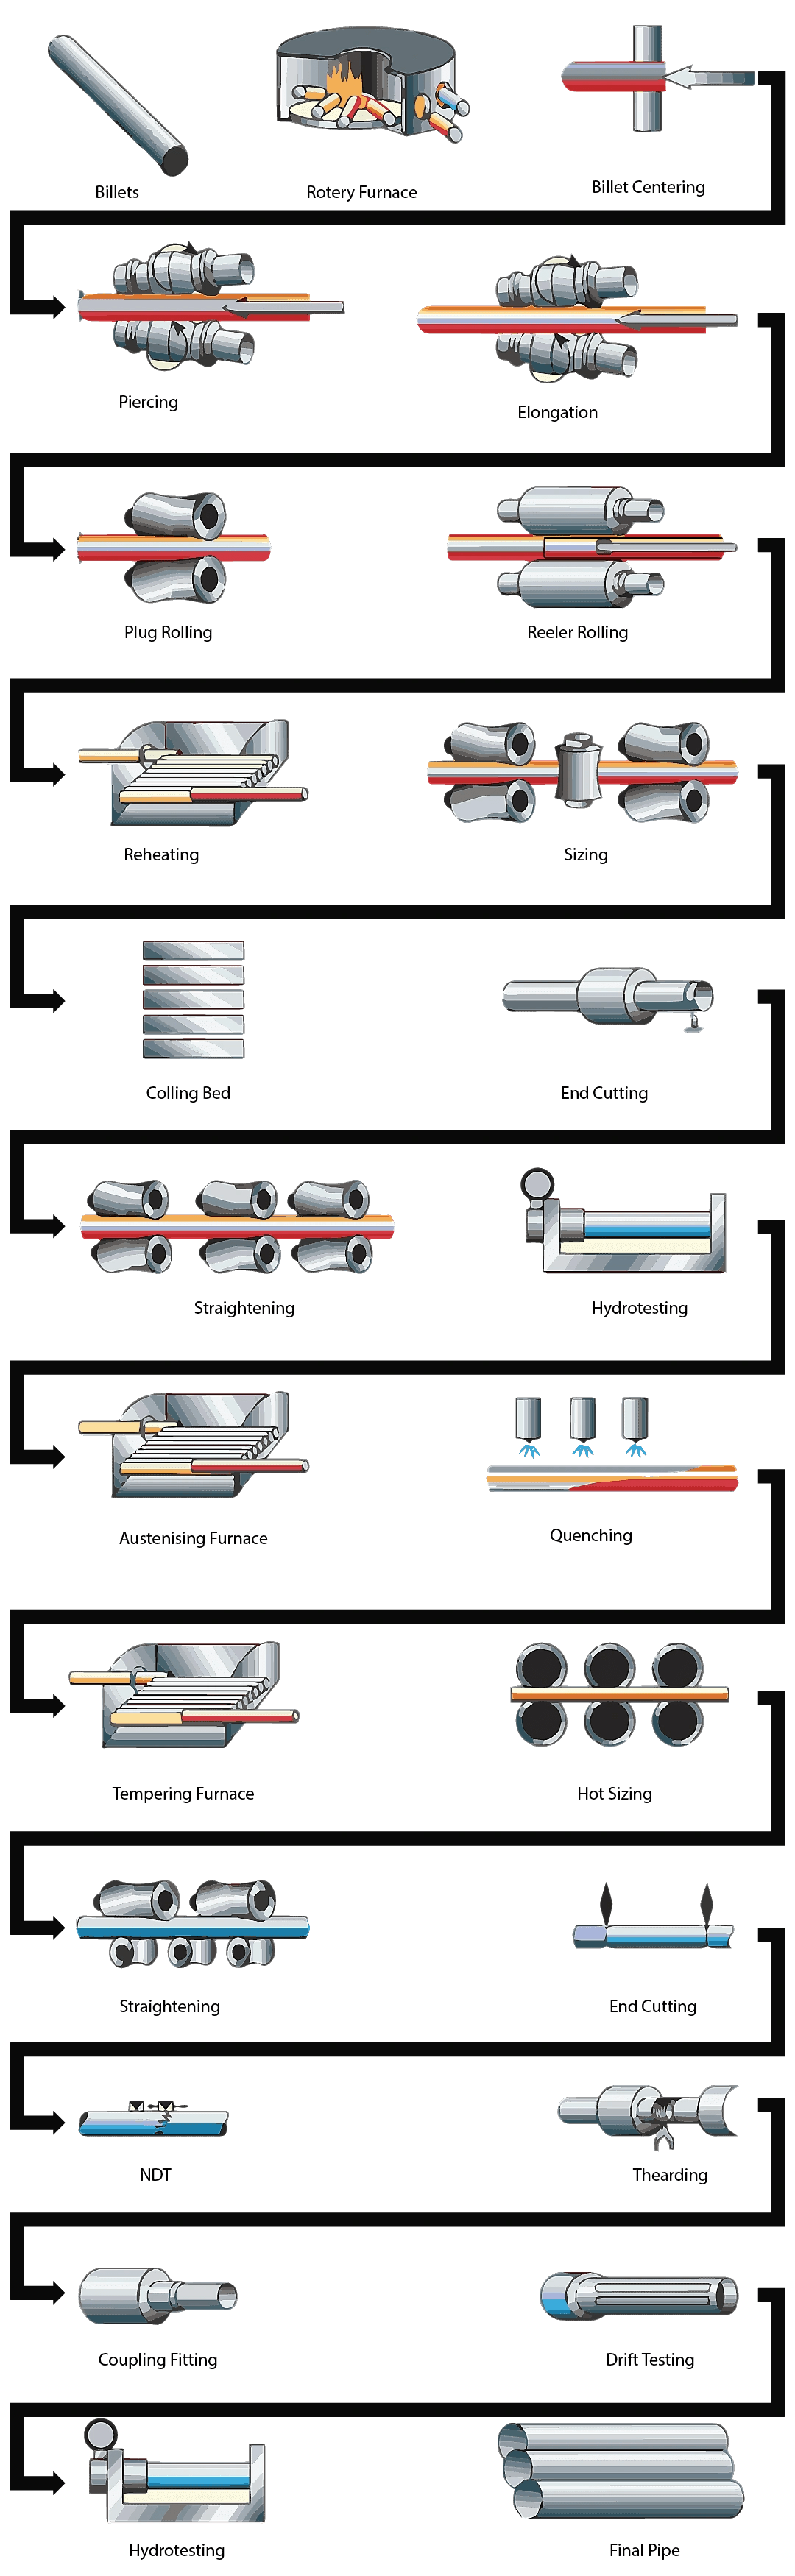 Pipe manufacturing process methods for seamless welded pipe plugmill process for pipe manufacturing geenschuldenfo Image collections